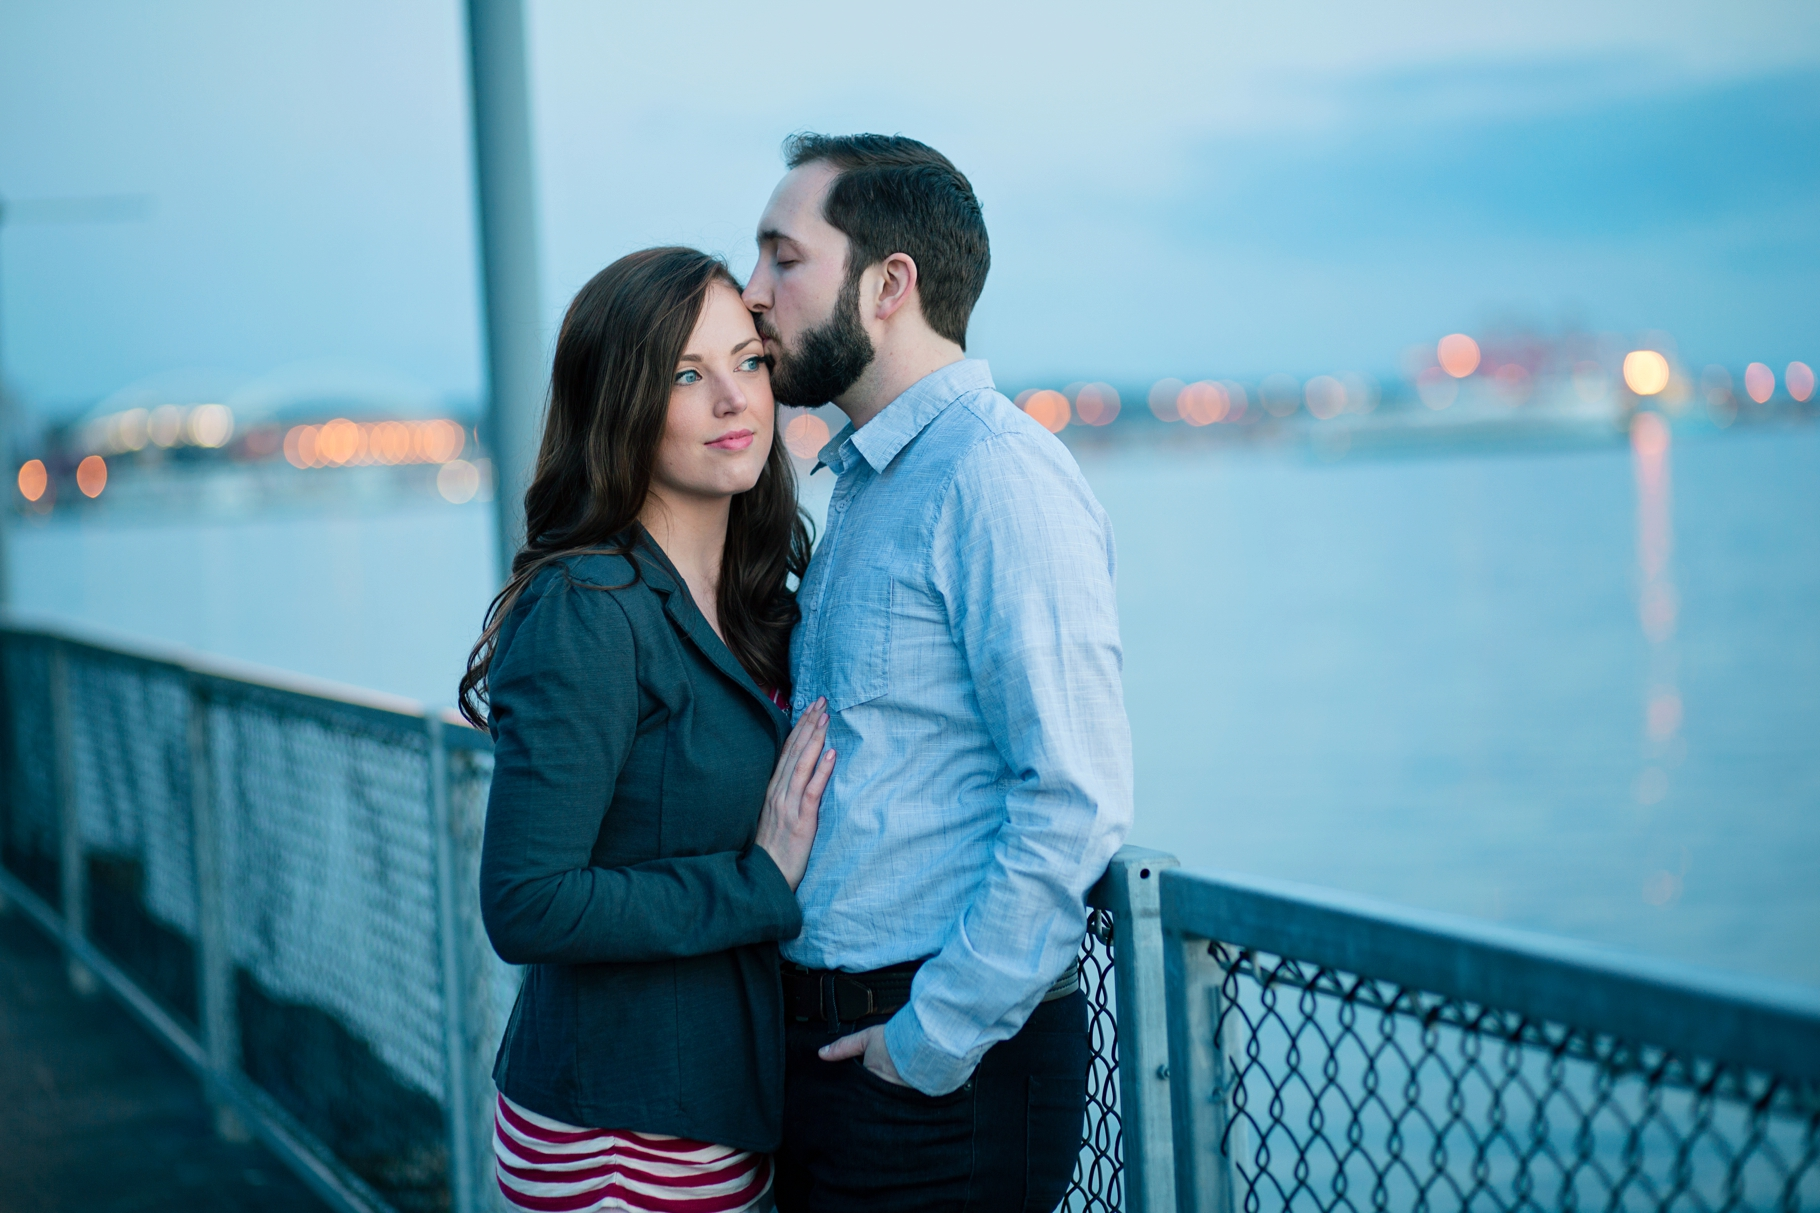 14-Engaged-Seattle-Downtown-Waterfront-Romantic-twilight-boardwalk-cityscape-Enagement-Photographer-Wedding-Photography-by-Betty-Elaine